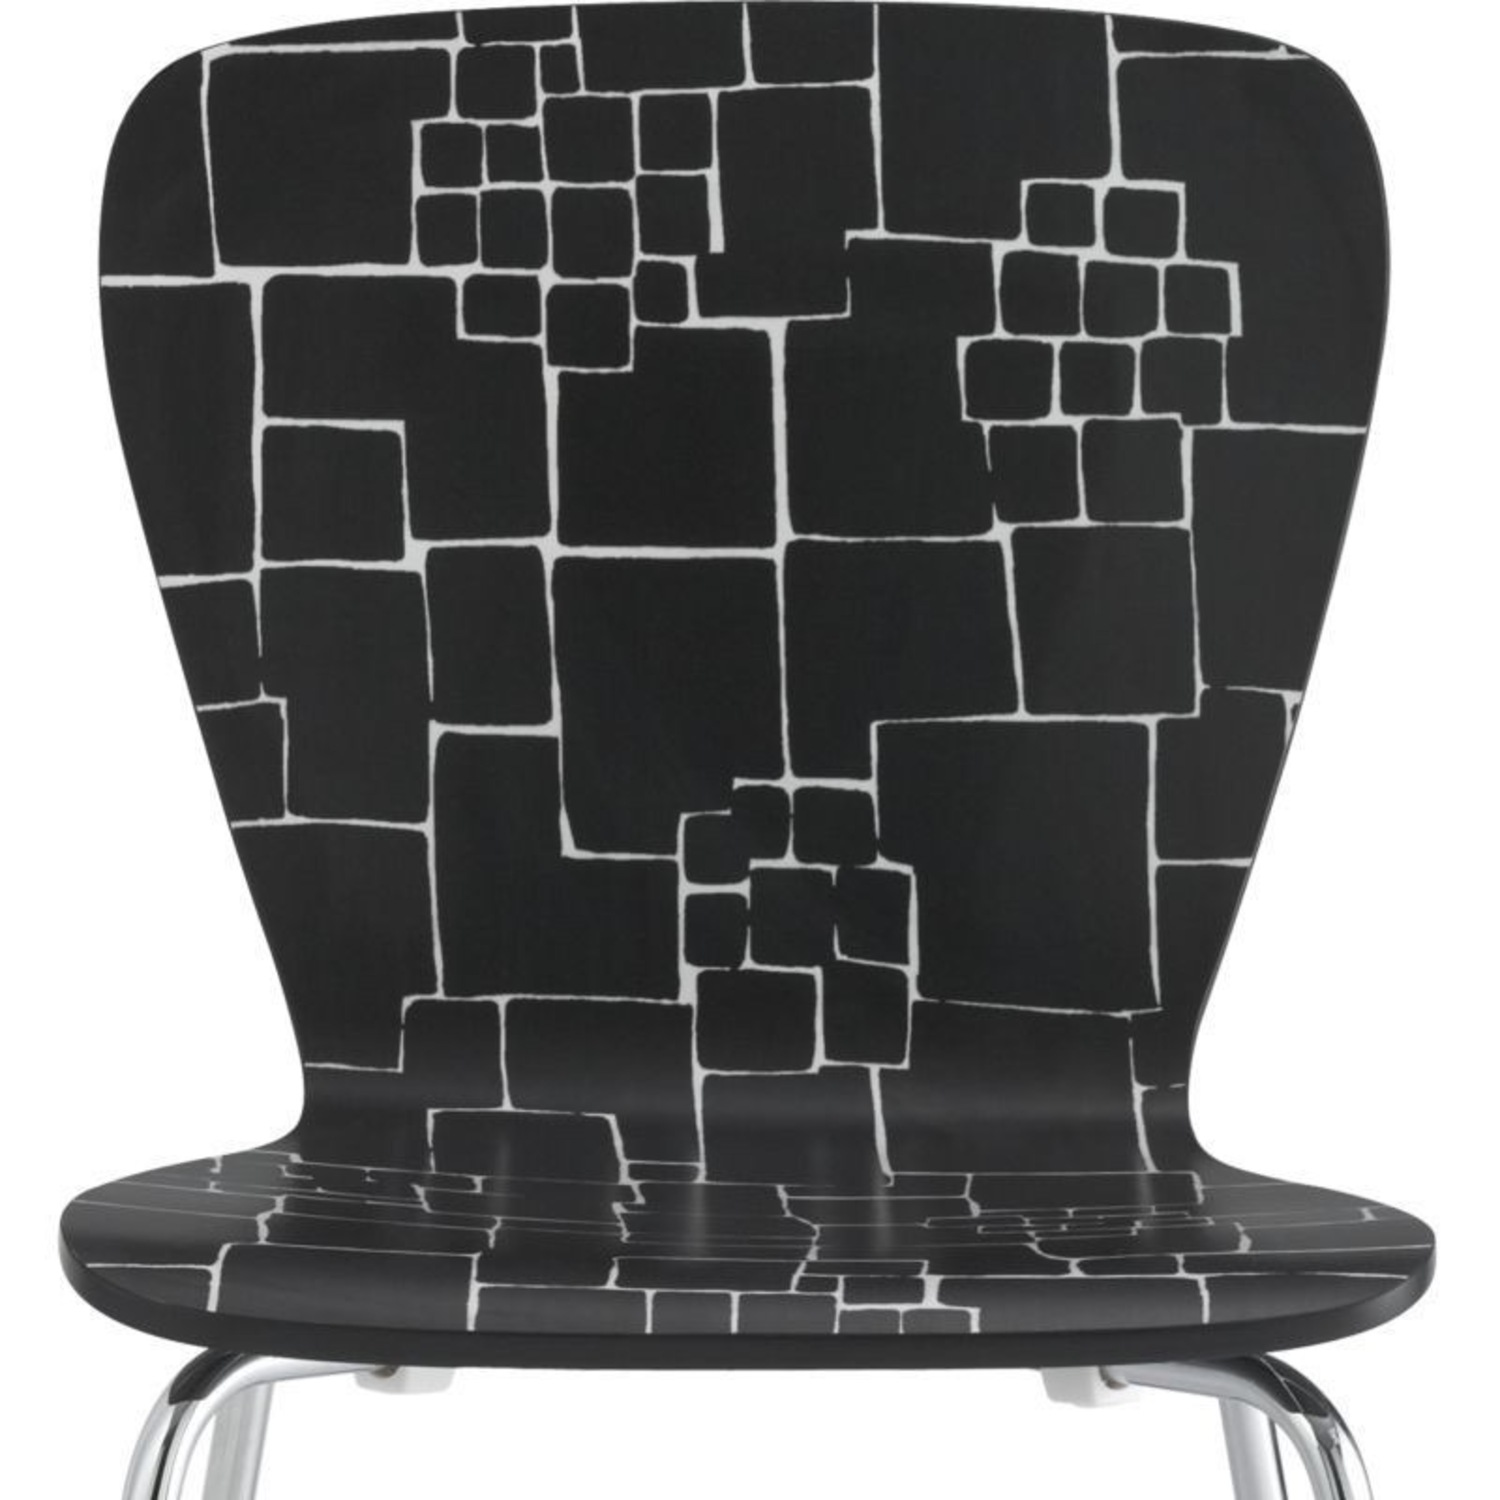 Crate & Barrel Felix Chairs - image-1